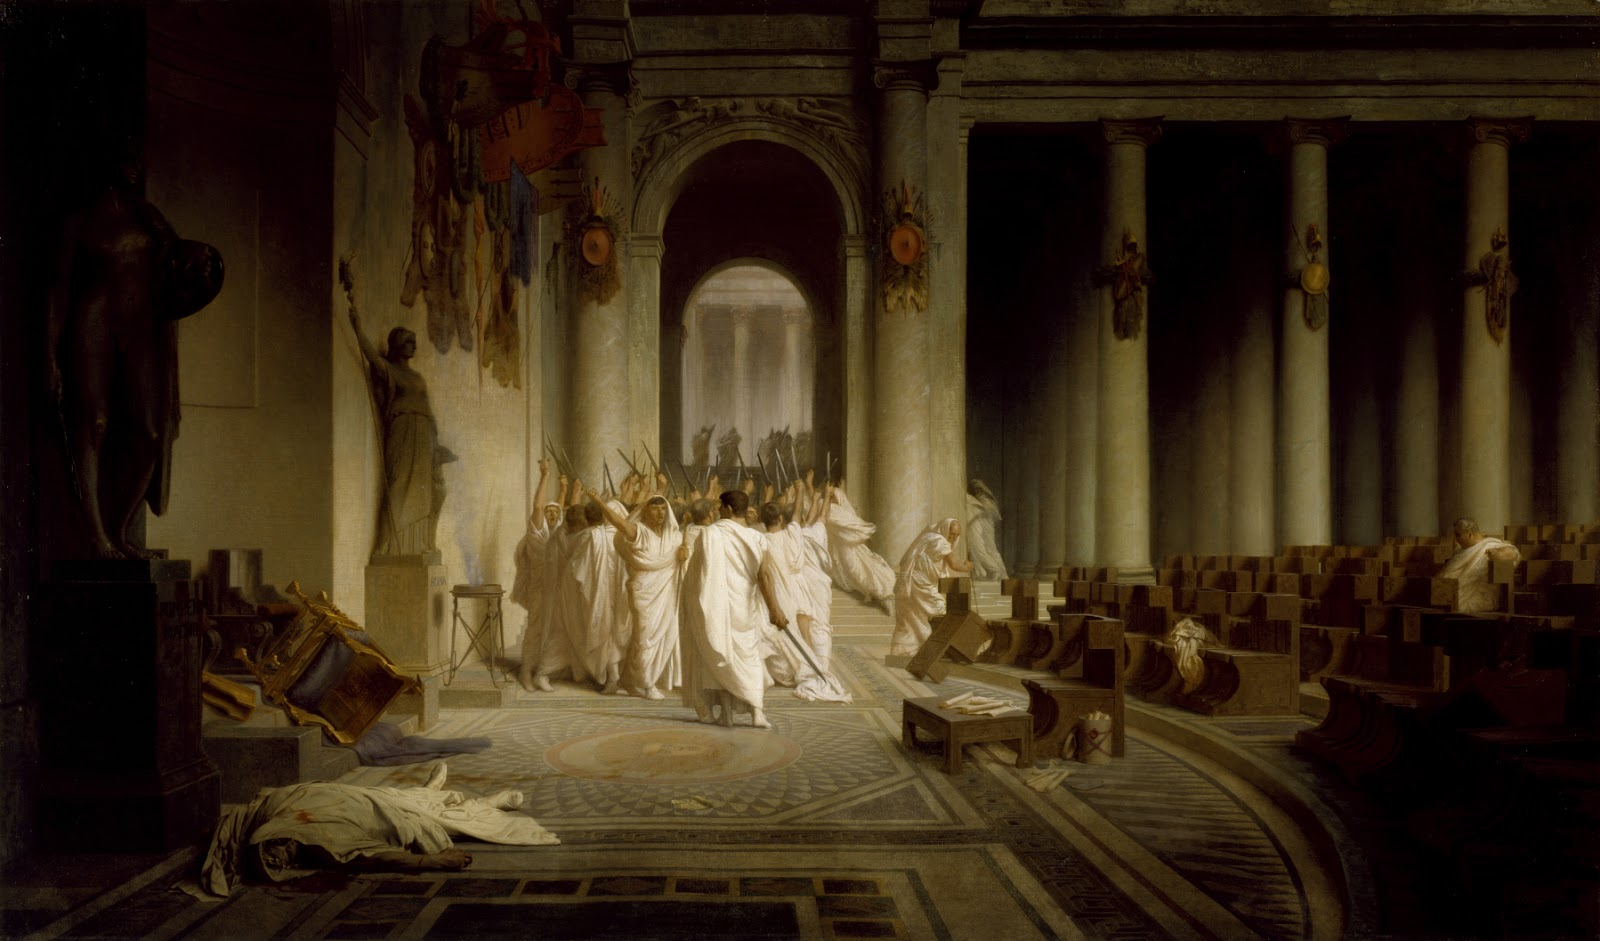 julius caesar act 2 omens The mention of julius caesar drives the introduction to the play that the dream was a favorable omen act ii, scene iii: what does artemidorus plan to do.